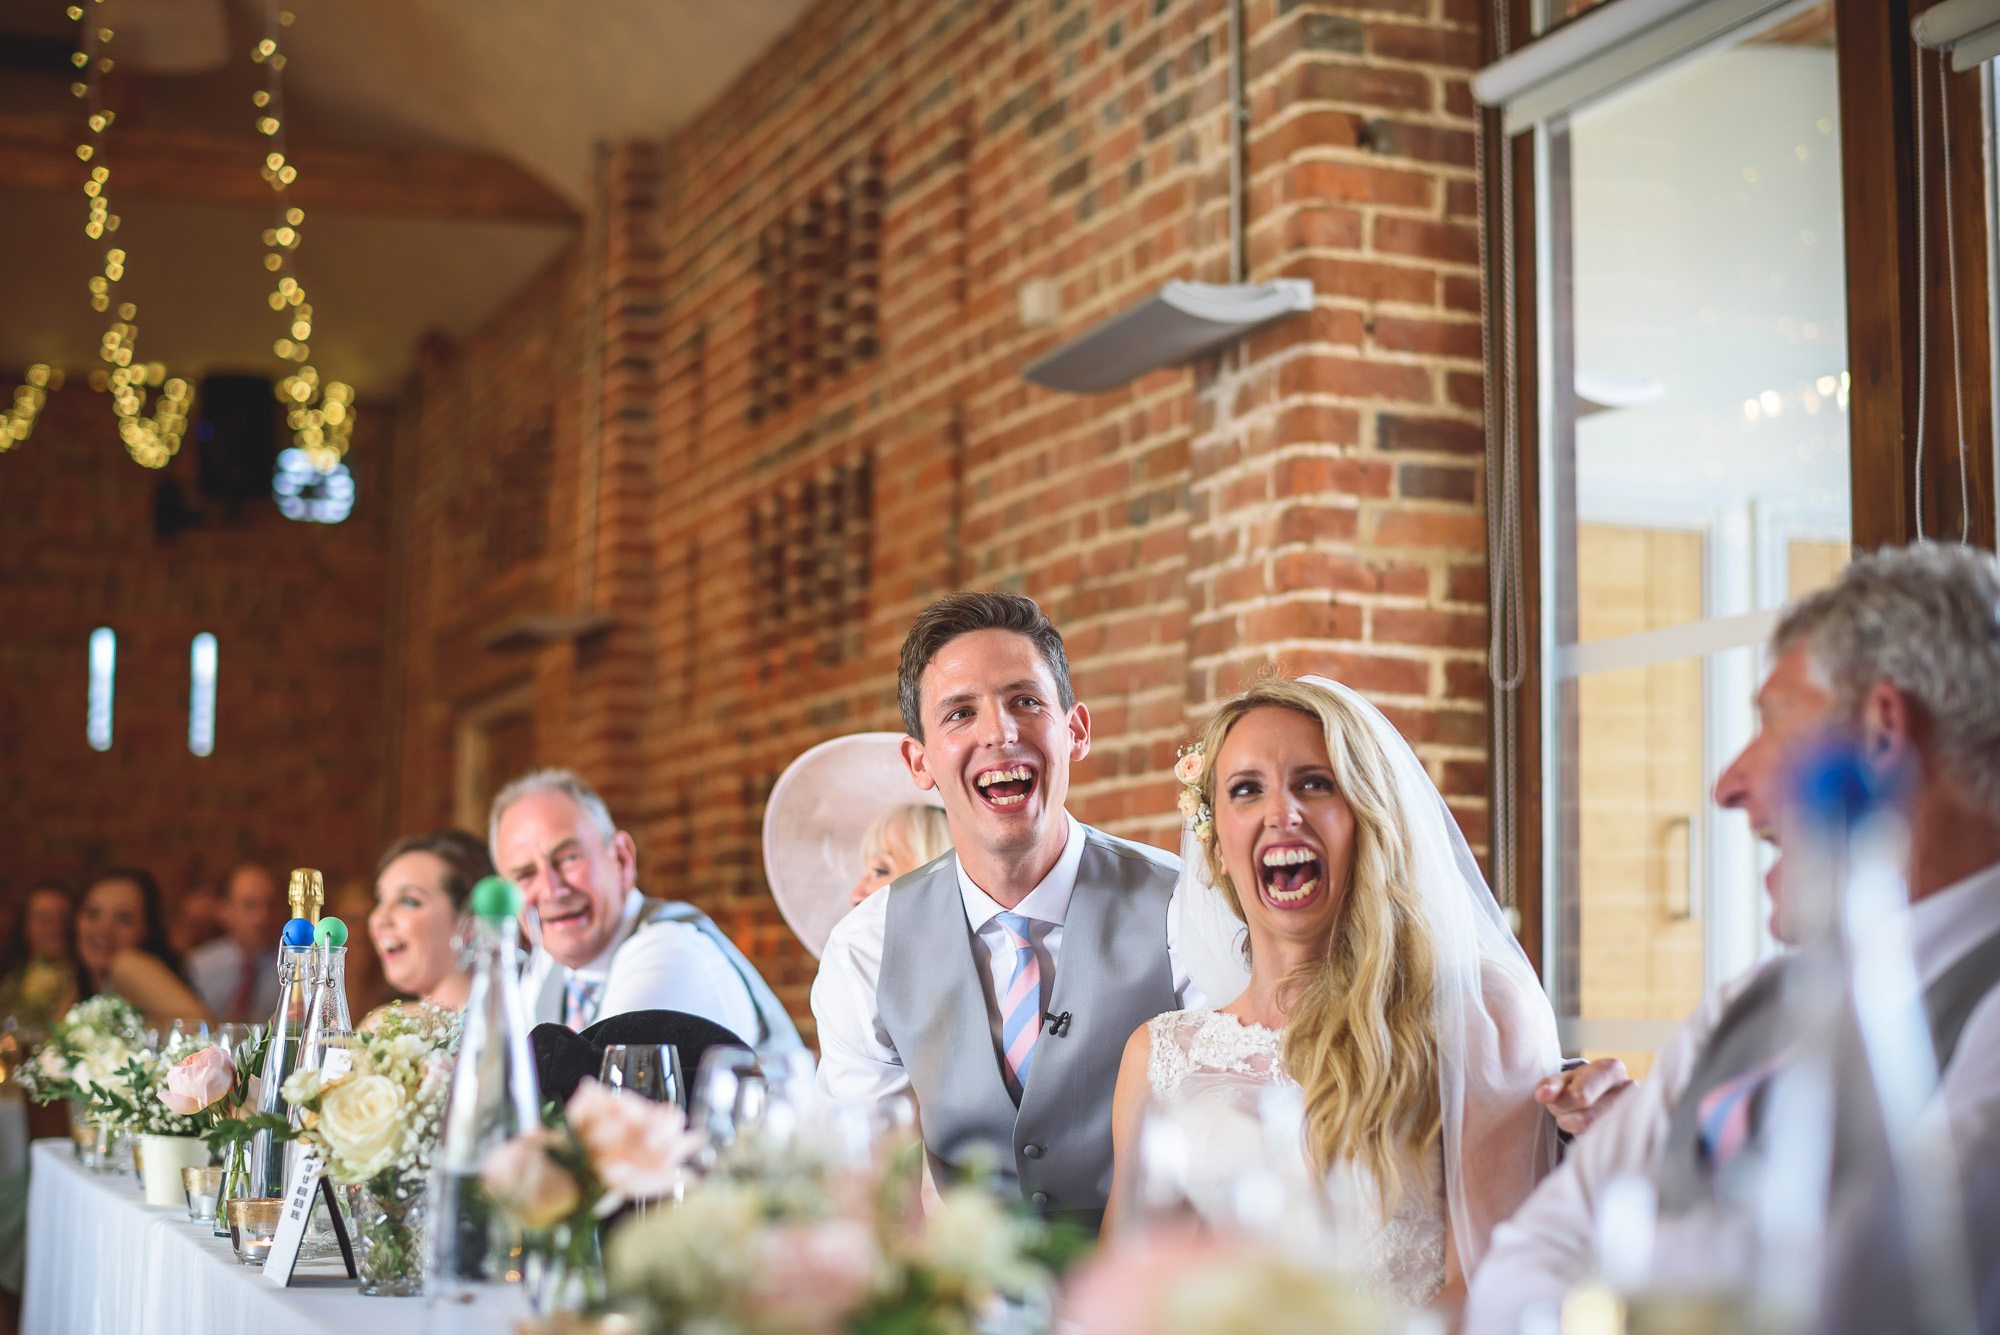 Suzanne-and-Wayne-Wasing-Park-wedding-photography-133-of-175